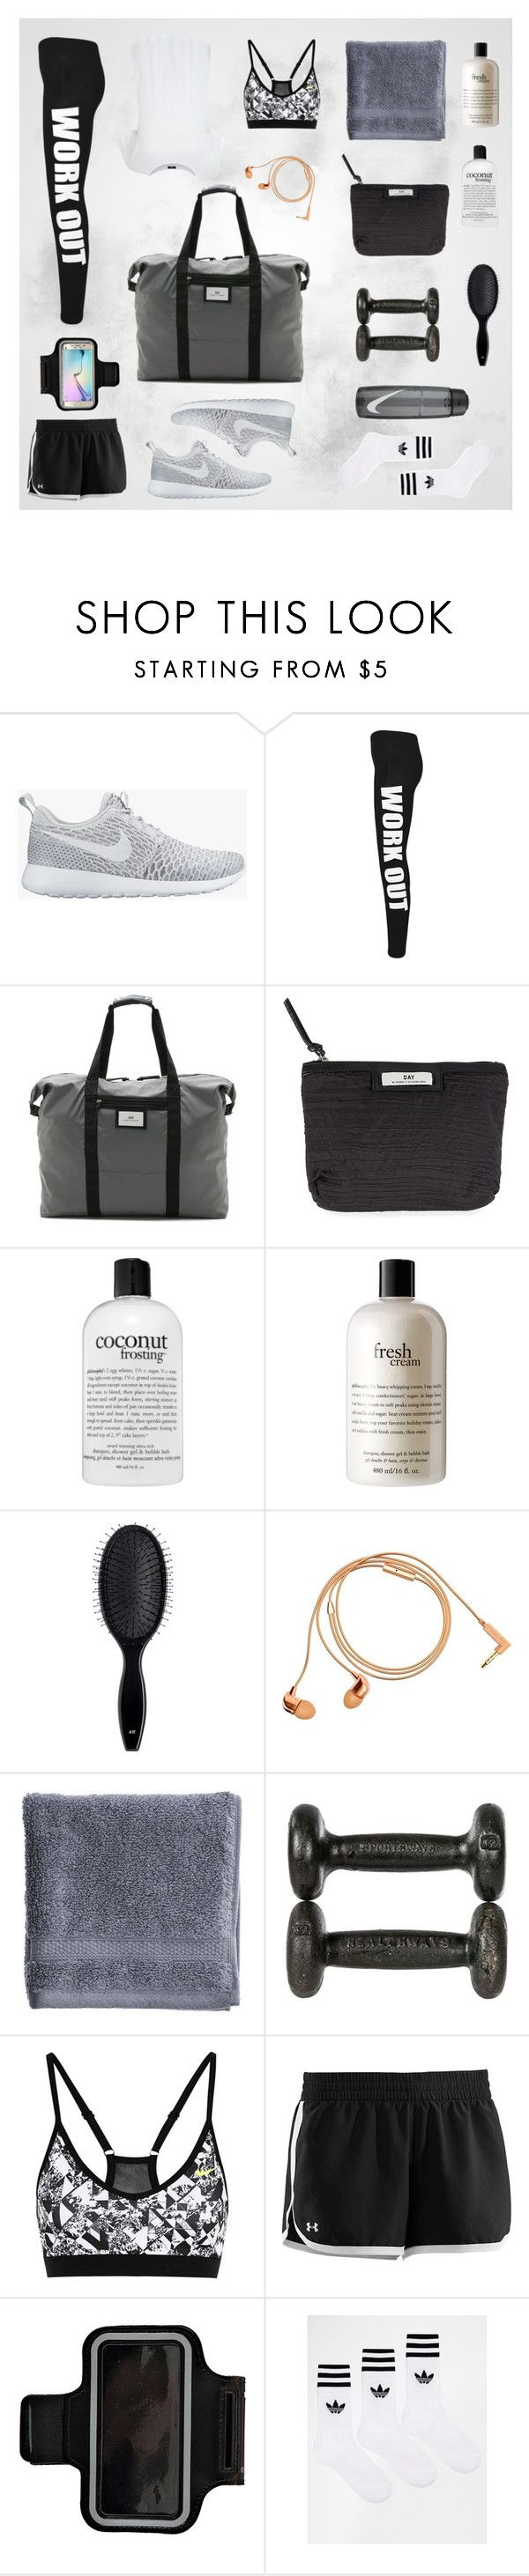 """w o r k   o u t"" by emelietegebo on Polyvore featuring NIKE, WearAll, DAY Birger et Mikkelsen, philosophy, H&M, Happy Plugs, Biltmore, Under Armour, Boohoo and Samsung"